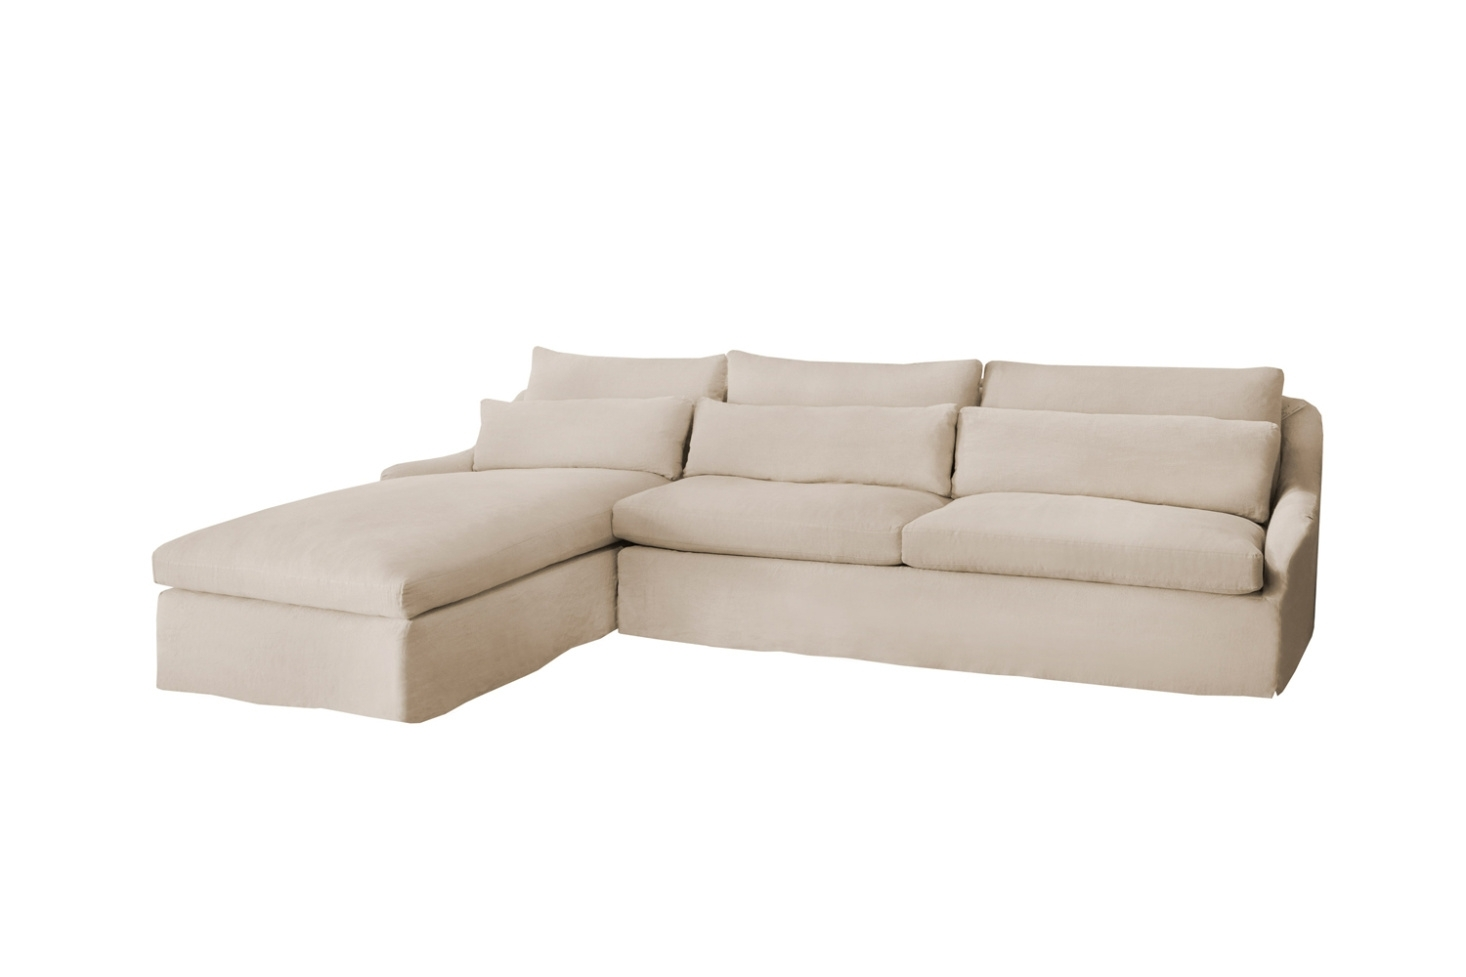 10 Easy Pieces: Sectional Chaise Sofas – Remodelista Intended For Elm Grande Ii 2 Piece Sectionals (Image 7 of 25)